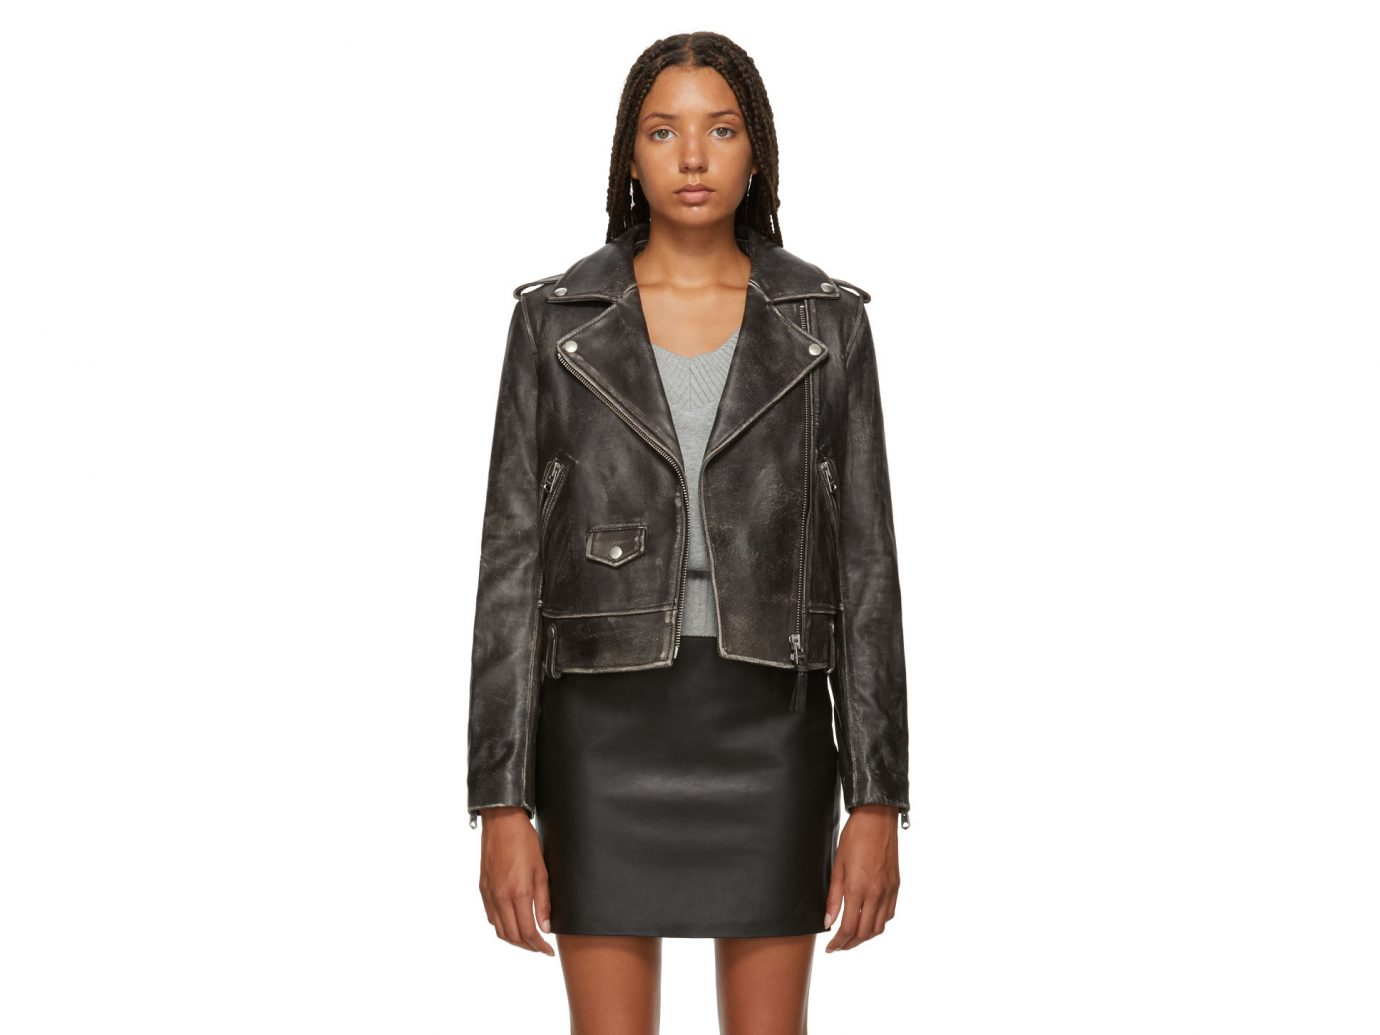 Mackage Black Leather Distressed Baya Jacket